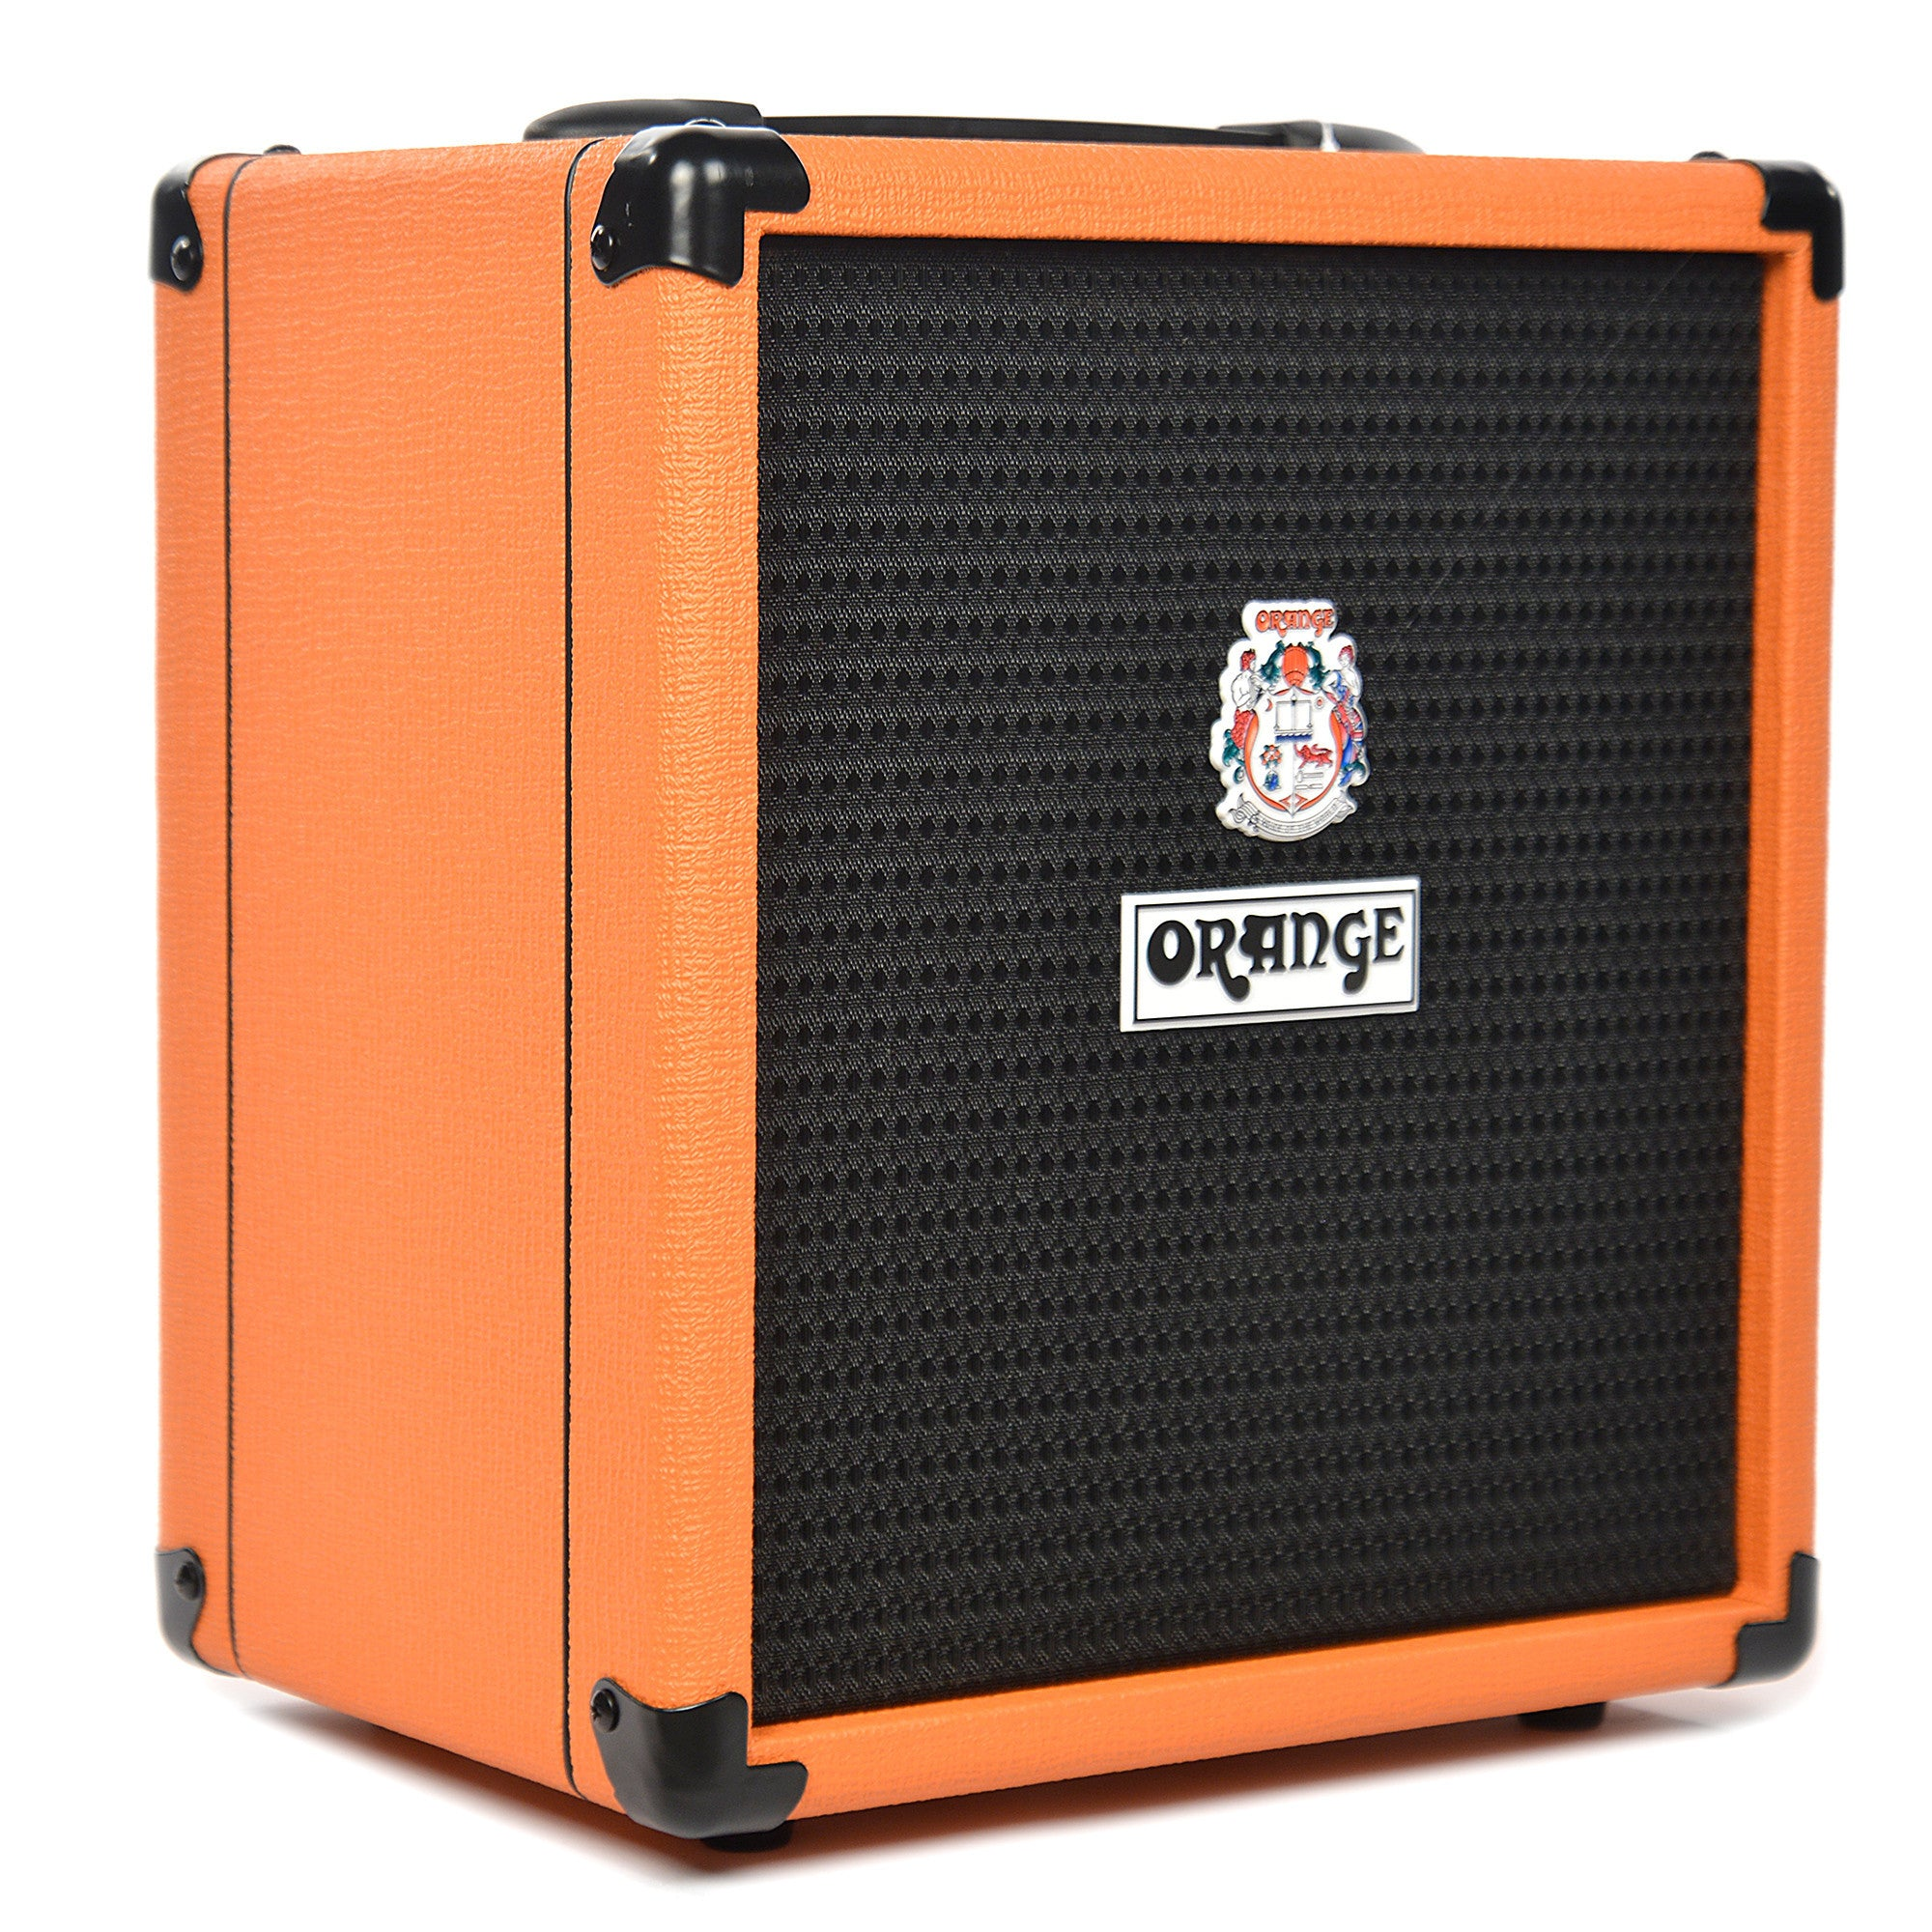 orange crush bass 25 1x8 25w combo chicago music exchange. Black Bedroom Furniture Sets. Home Design Ideas